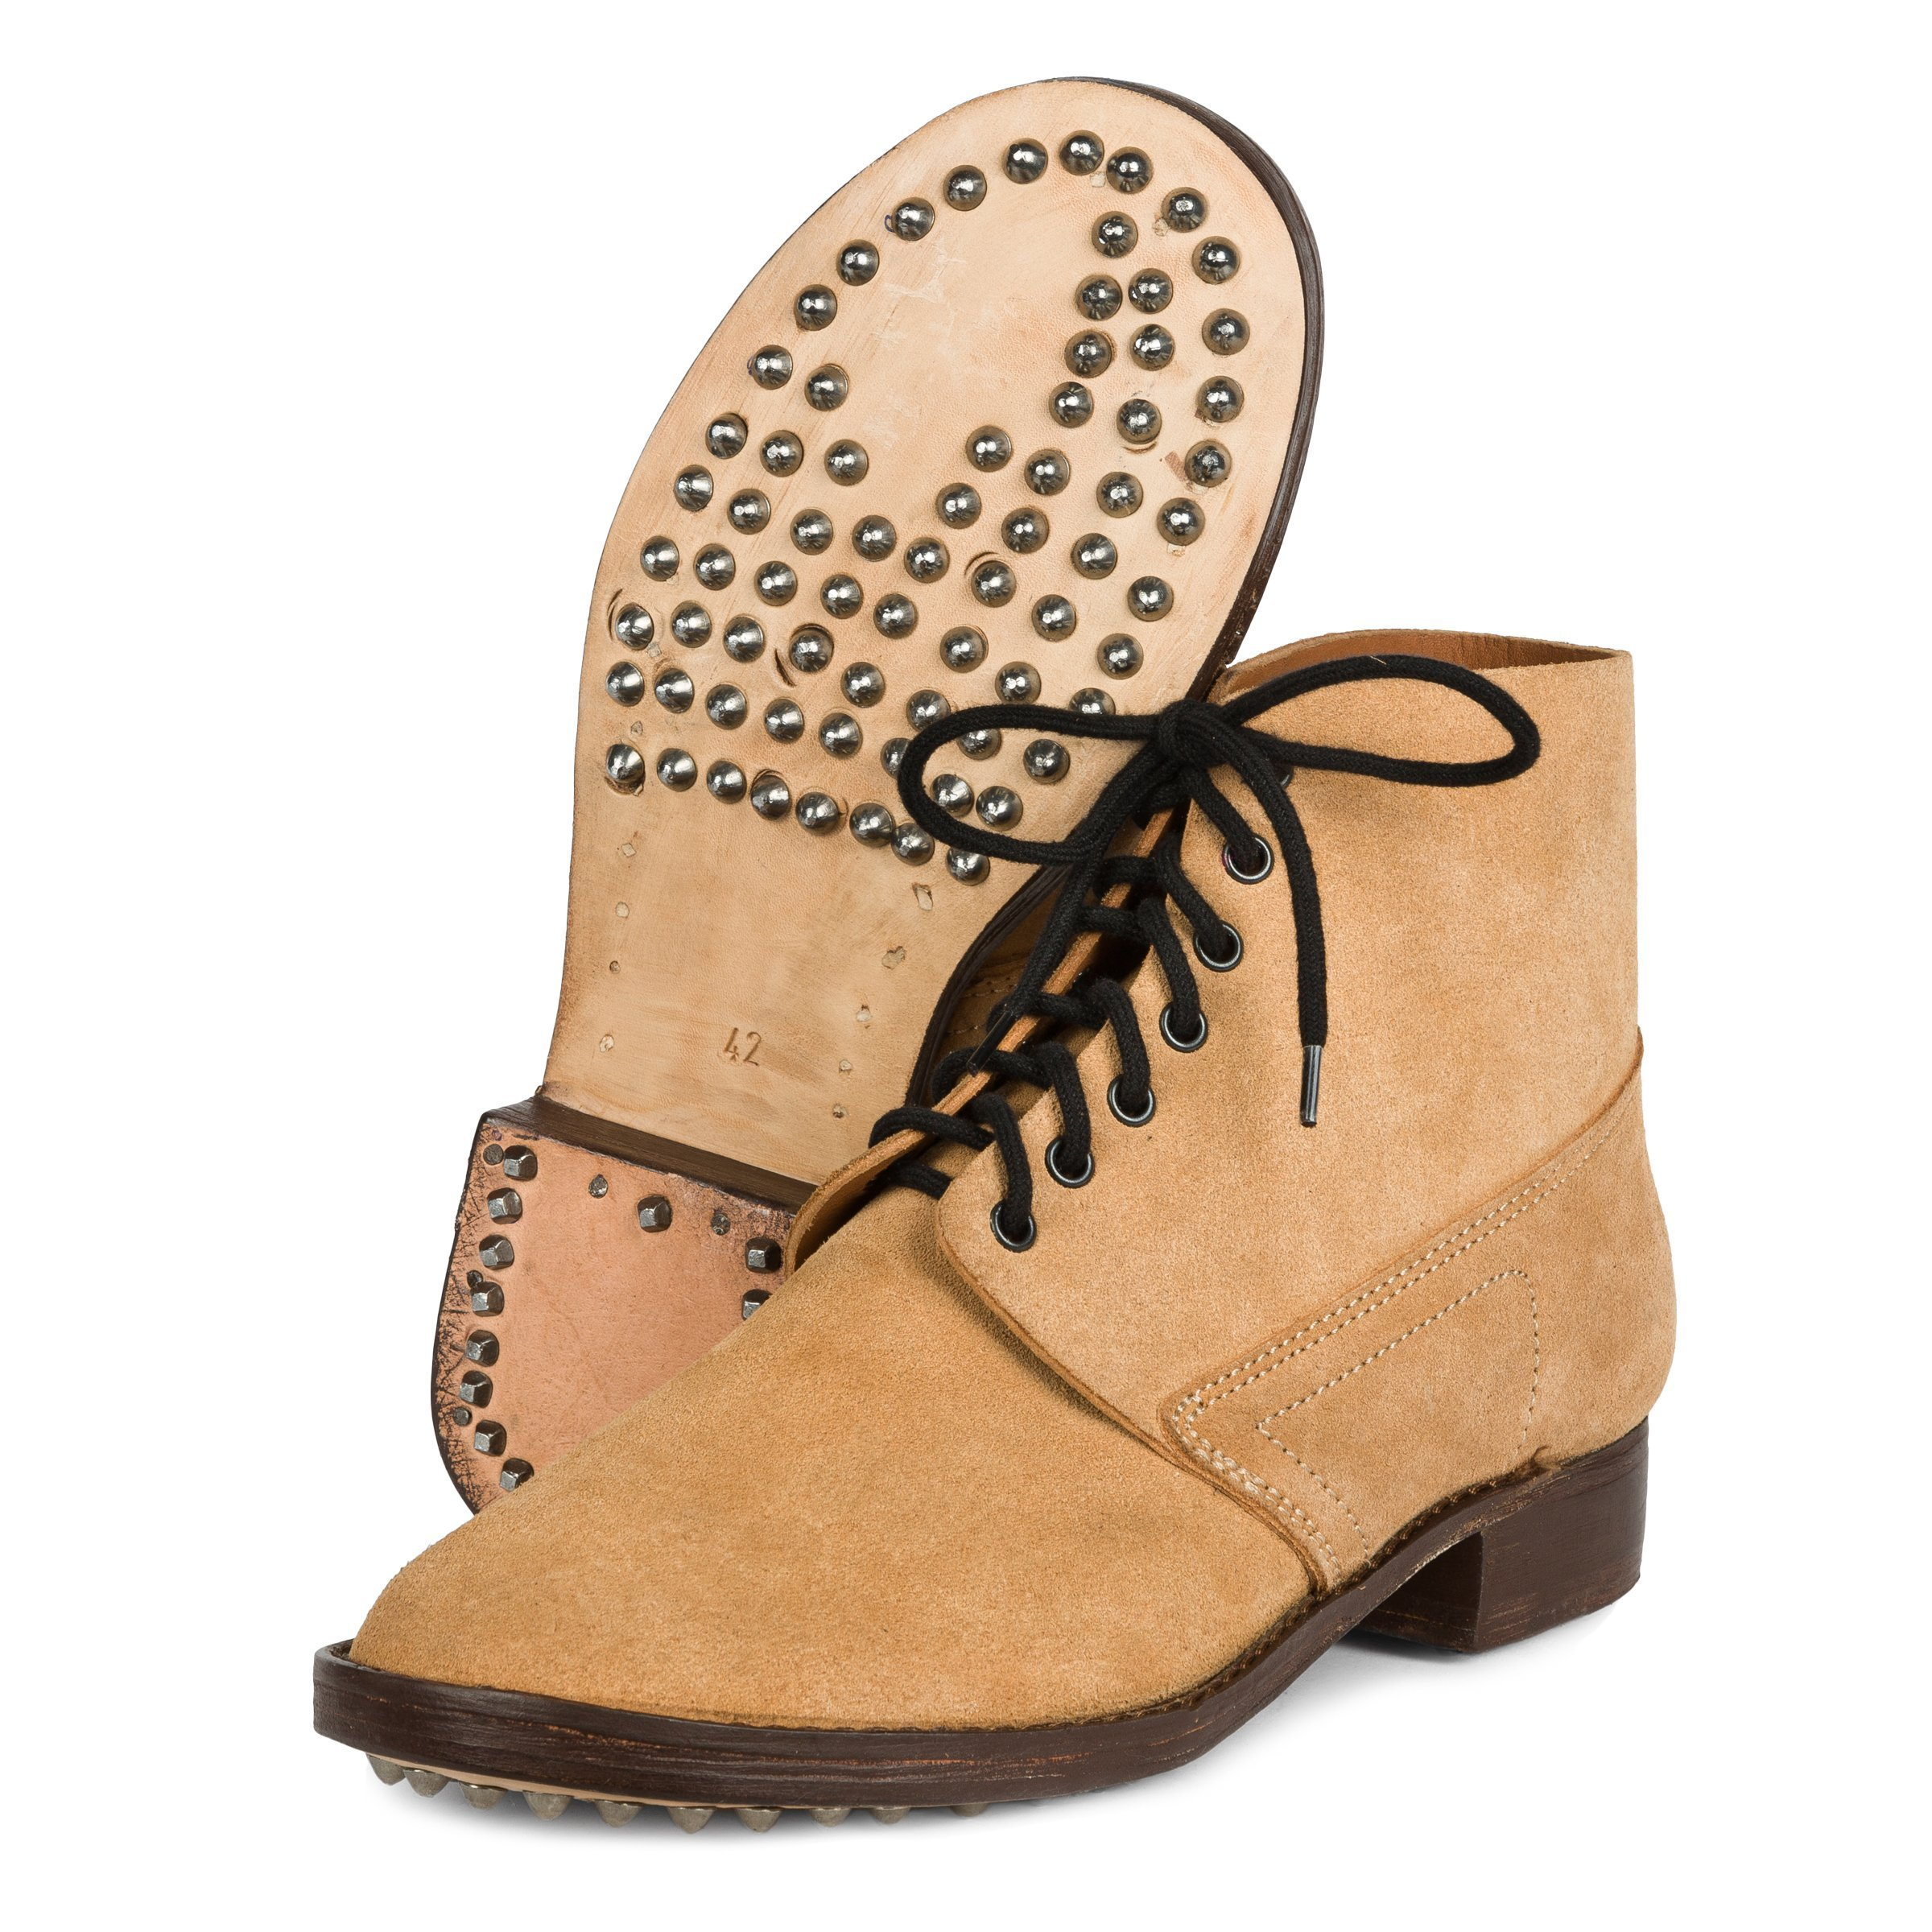 Brodequins Mle  1912 - French Army ankle boots- brown - repro